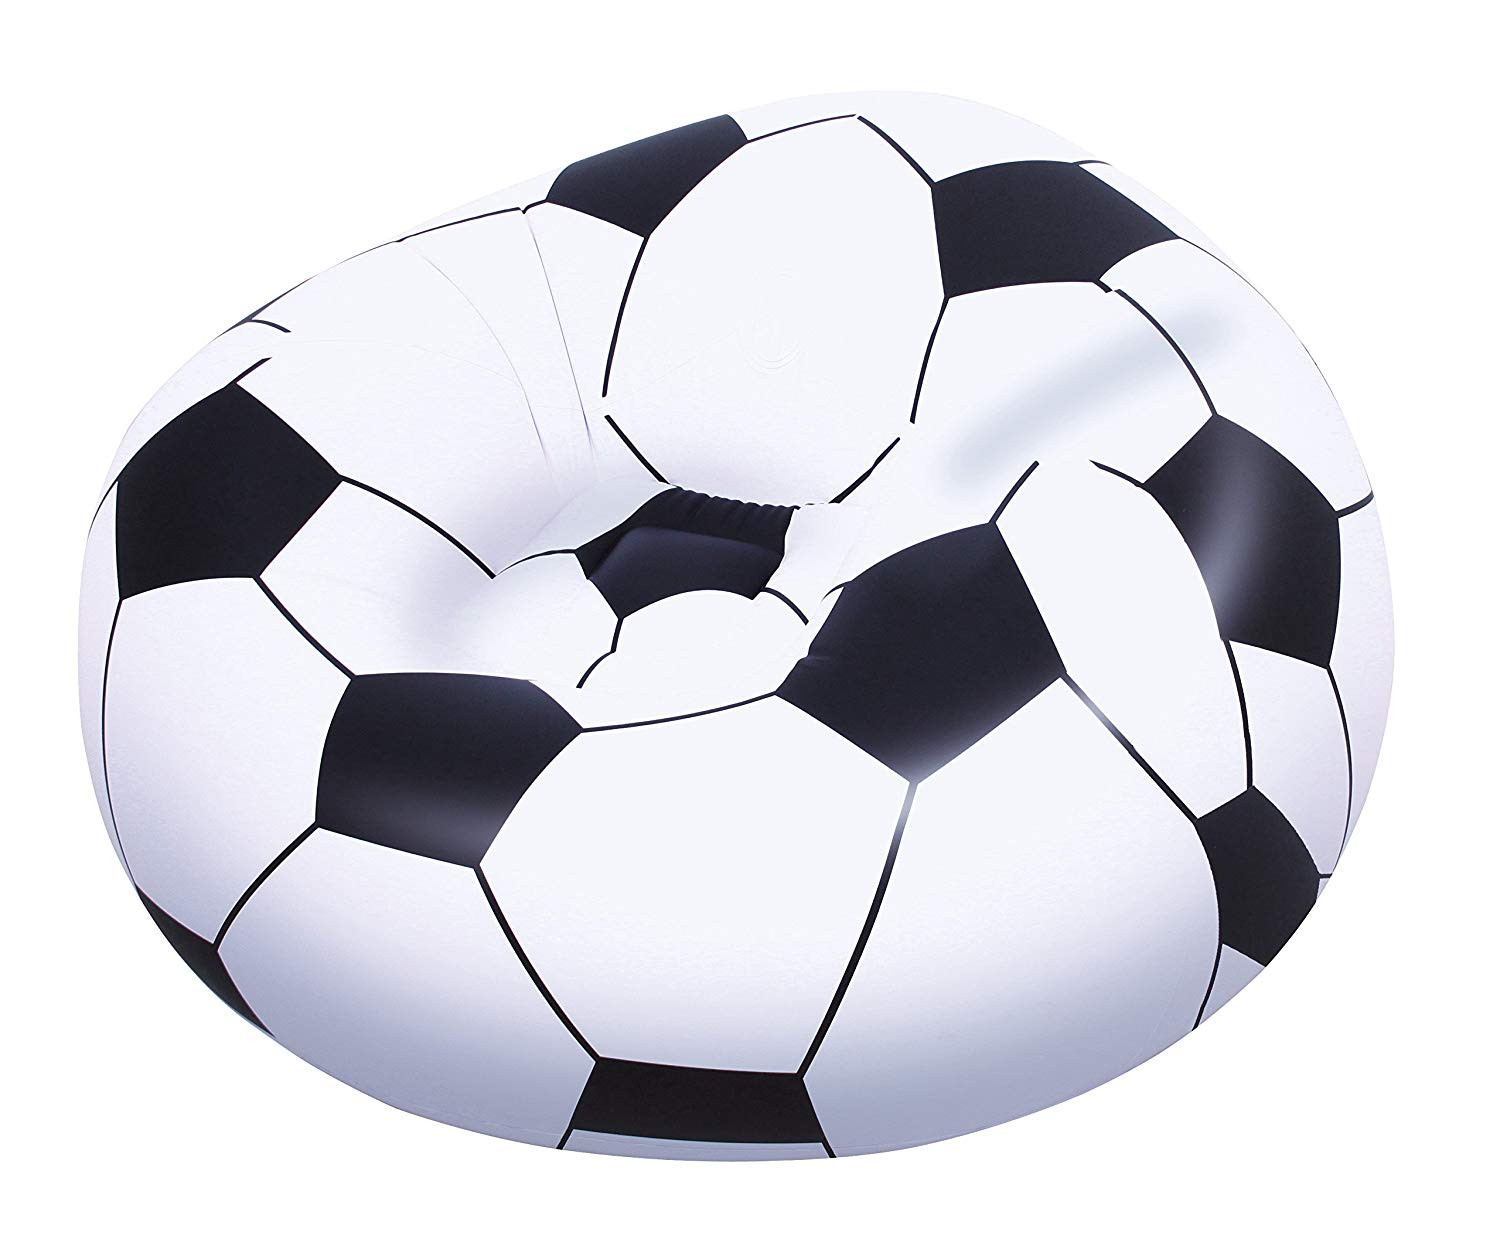 Bestway-Puff Inflatable Armchair Soccer Ball, 114 Cm X 112 Cm X 71 Cm-75010B